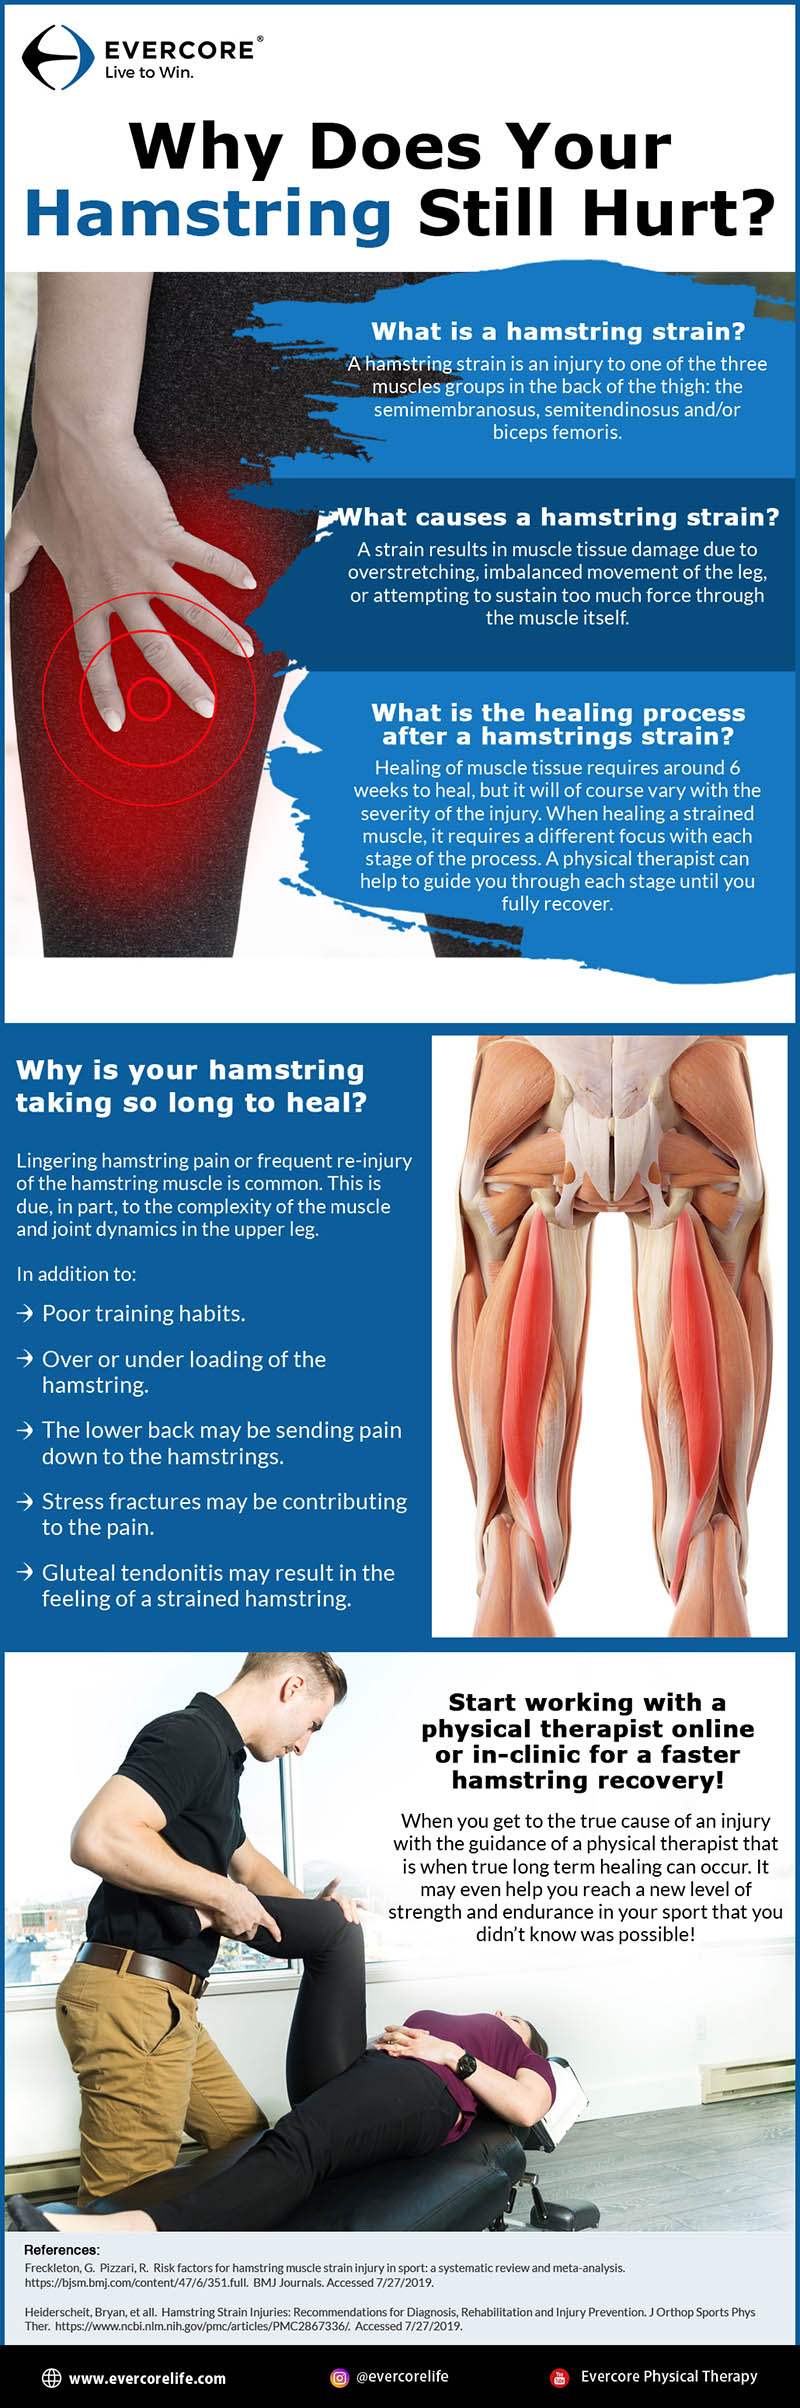 Why Does Your Hamstring Still Hurt infographic